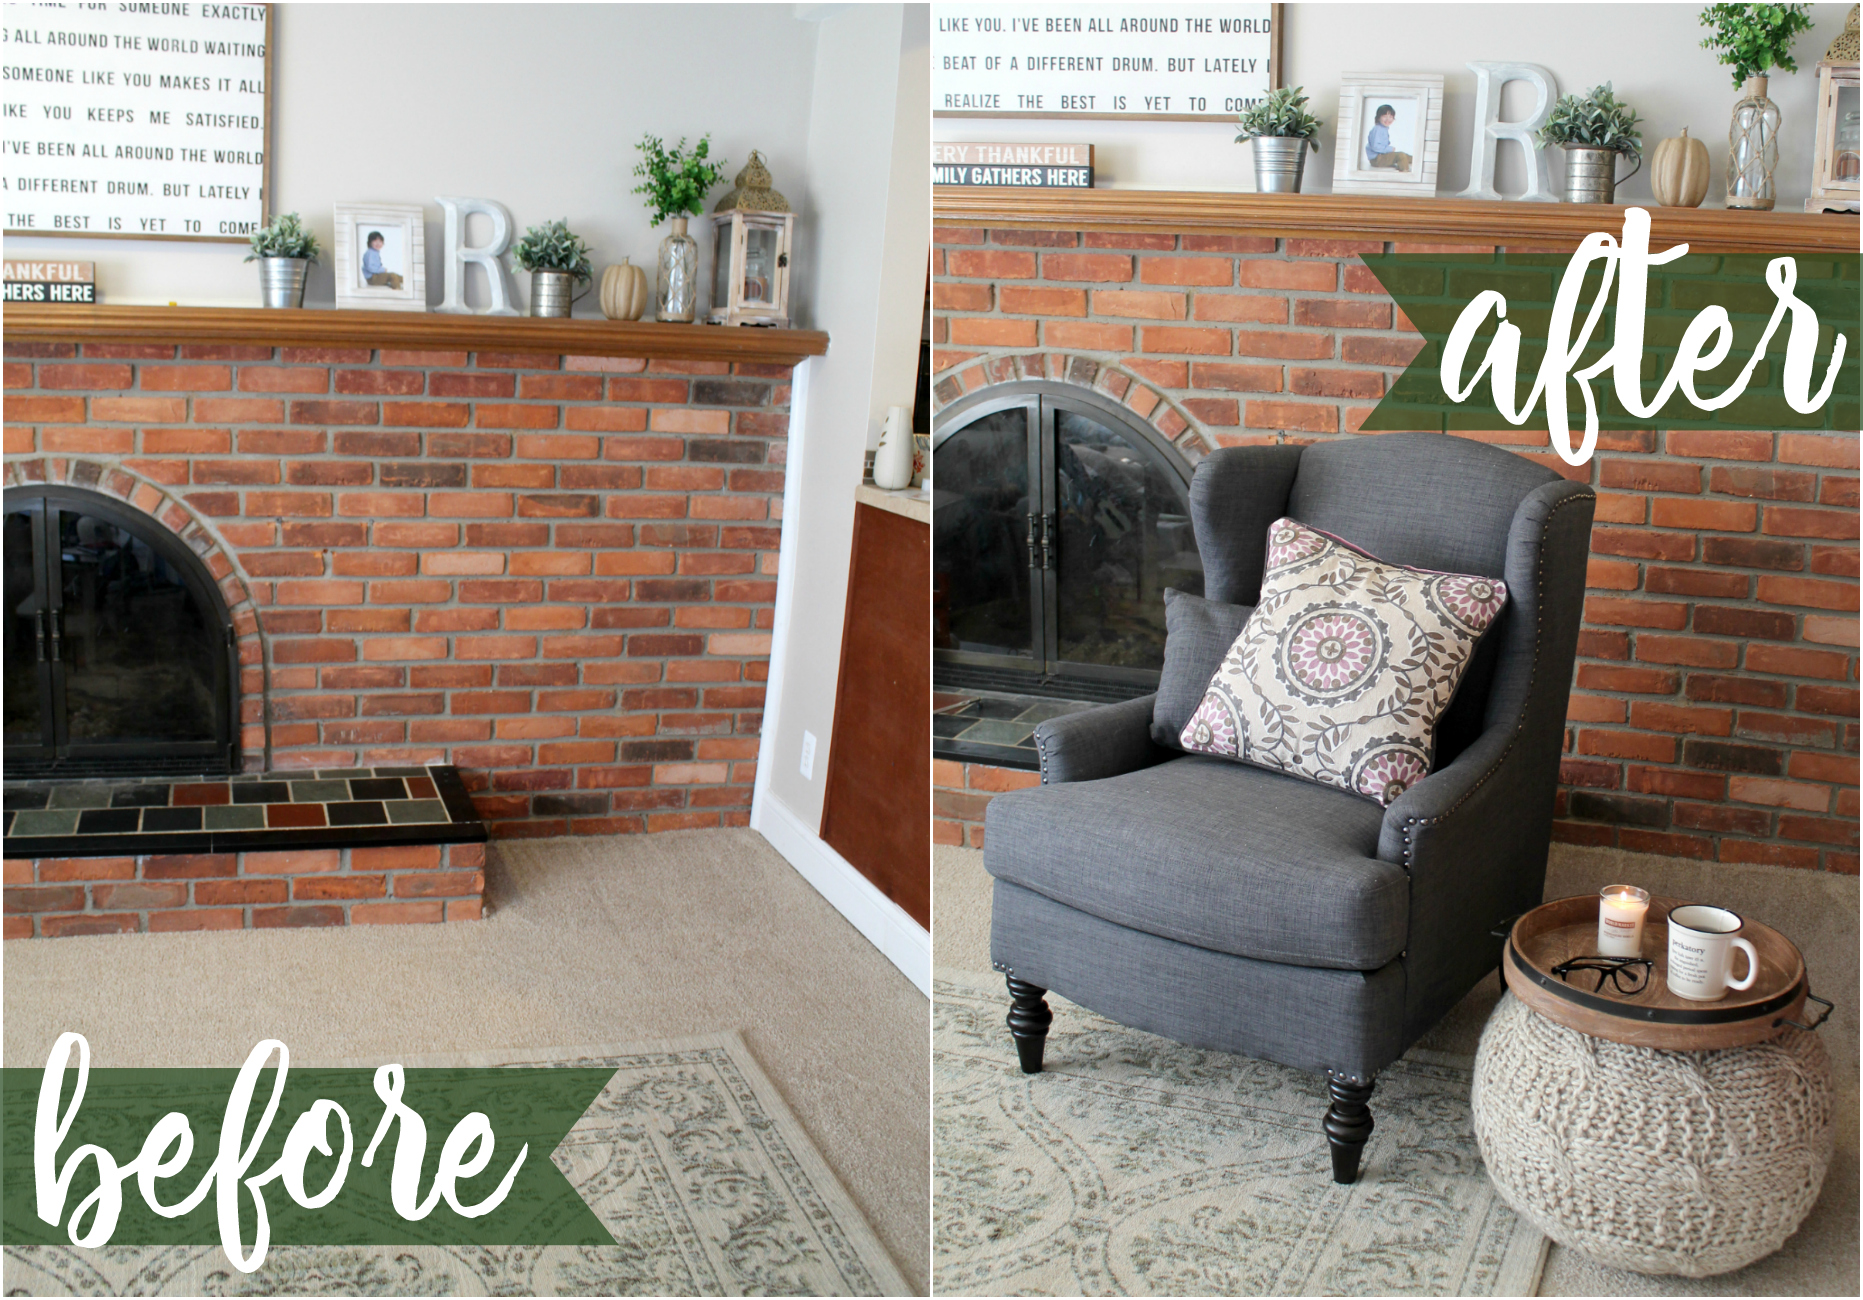 Tips for Creating a Cozy Fireside Seating Area